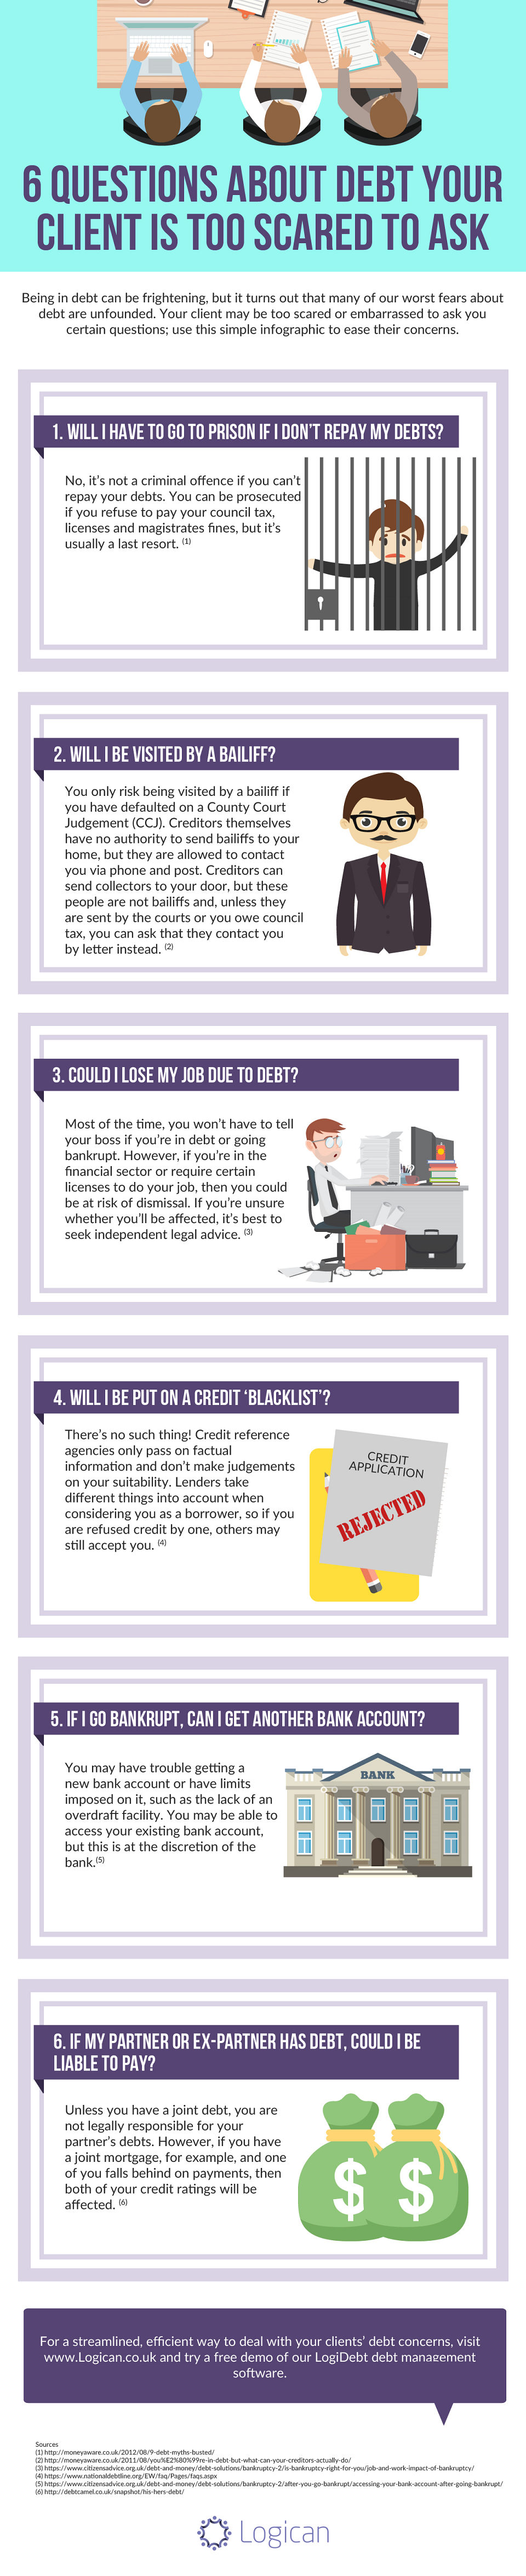 Questions about debt infographic